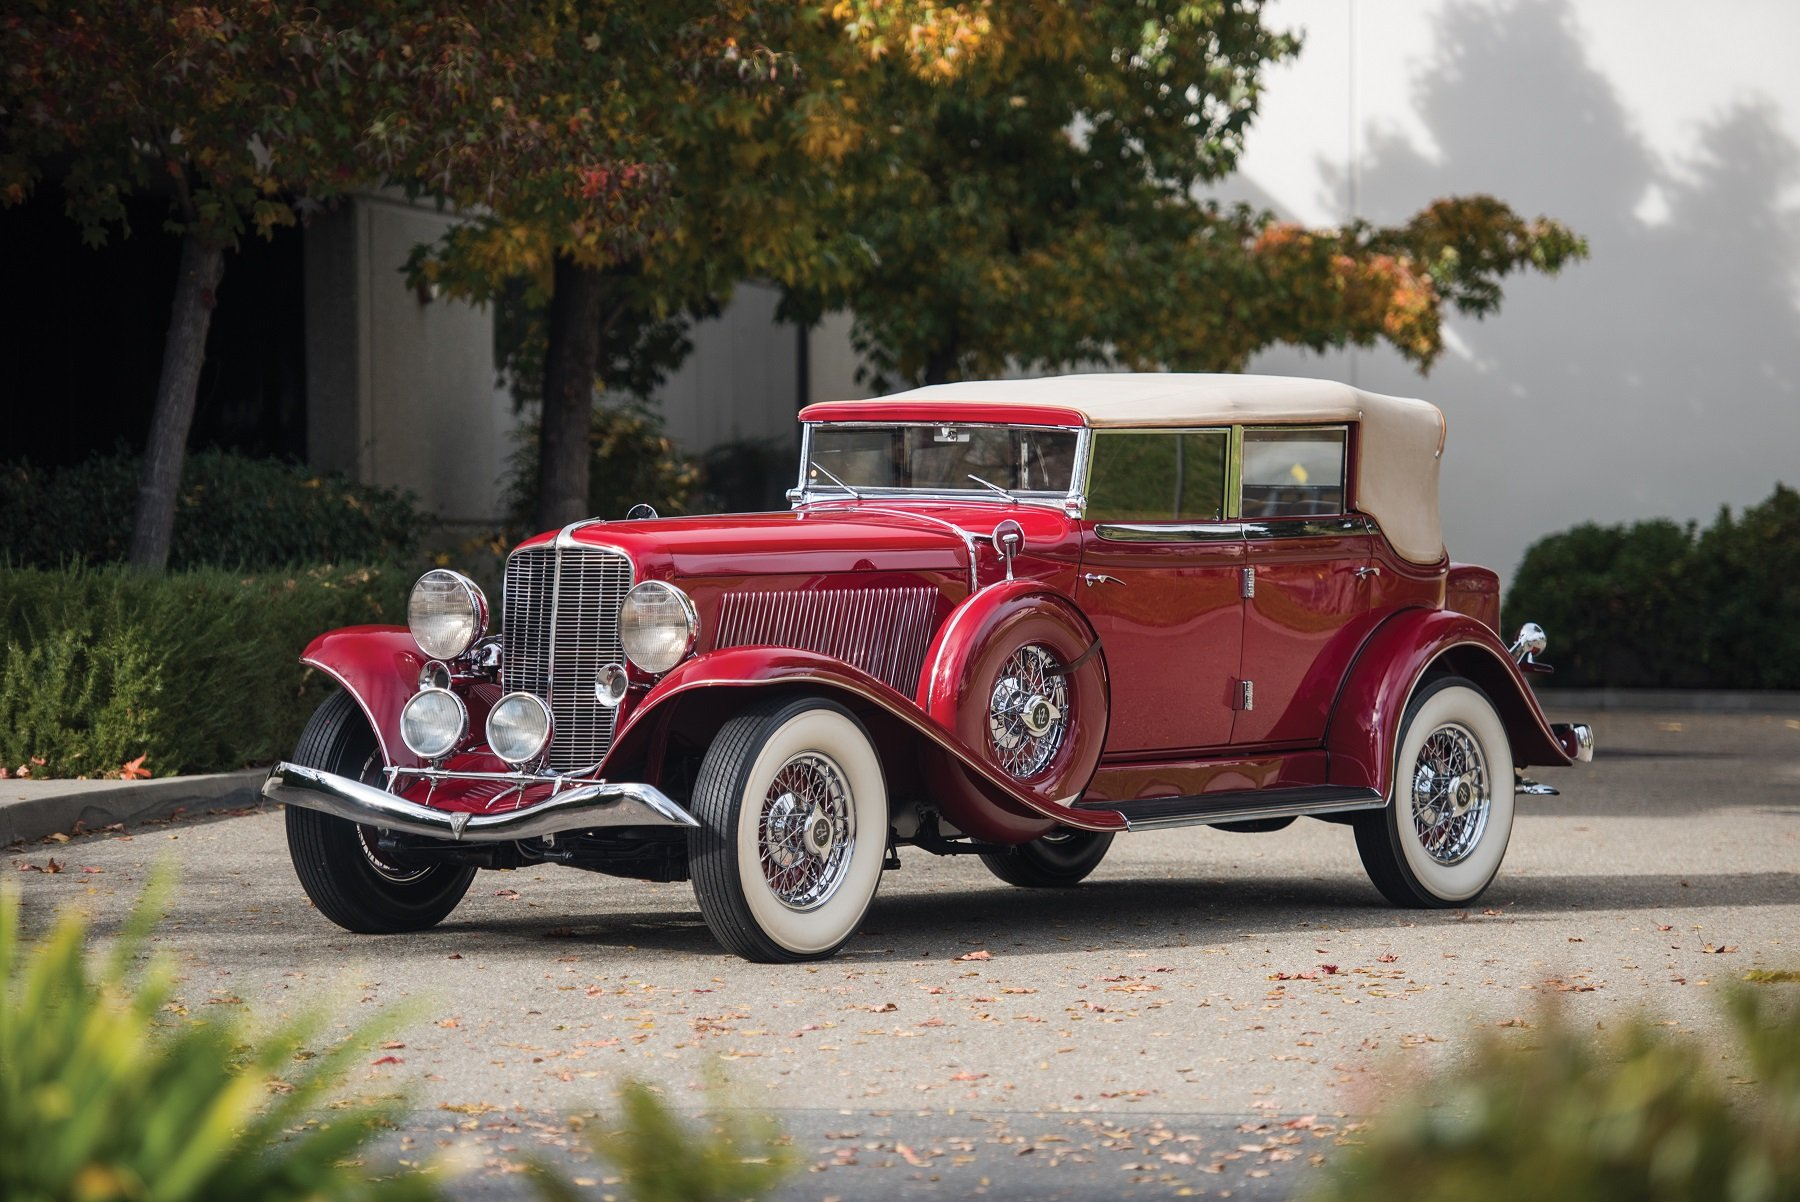 1934 auburn v12 1250 salon dual ratio phaeton sedan for 1934 auburn 1250 salon cabriolet